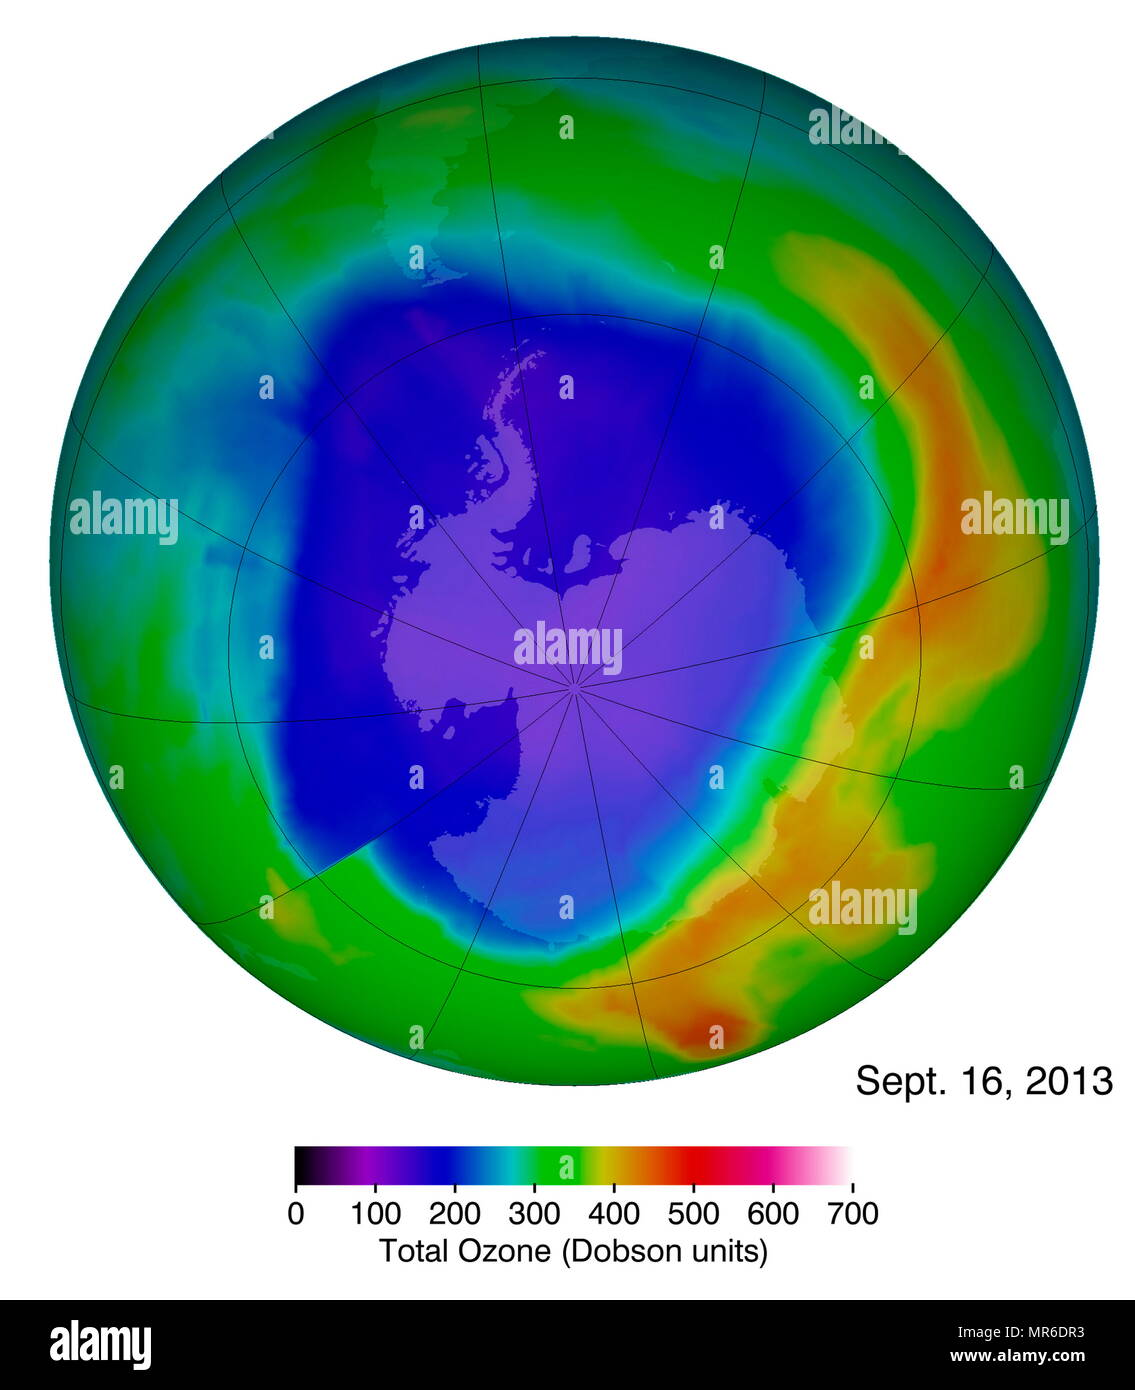 Antarctic ozone hole on Sept. 16th 2013. ozone concentrations to date, as shown in blue, and were captured by the OMI instrument on the Aura satellite. - Stock Image